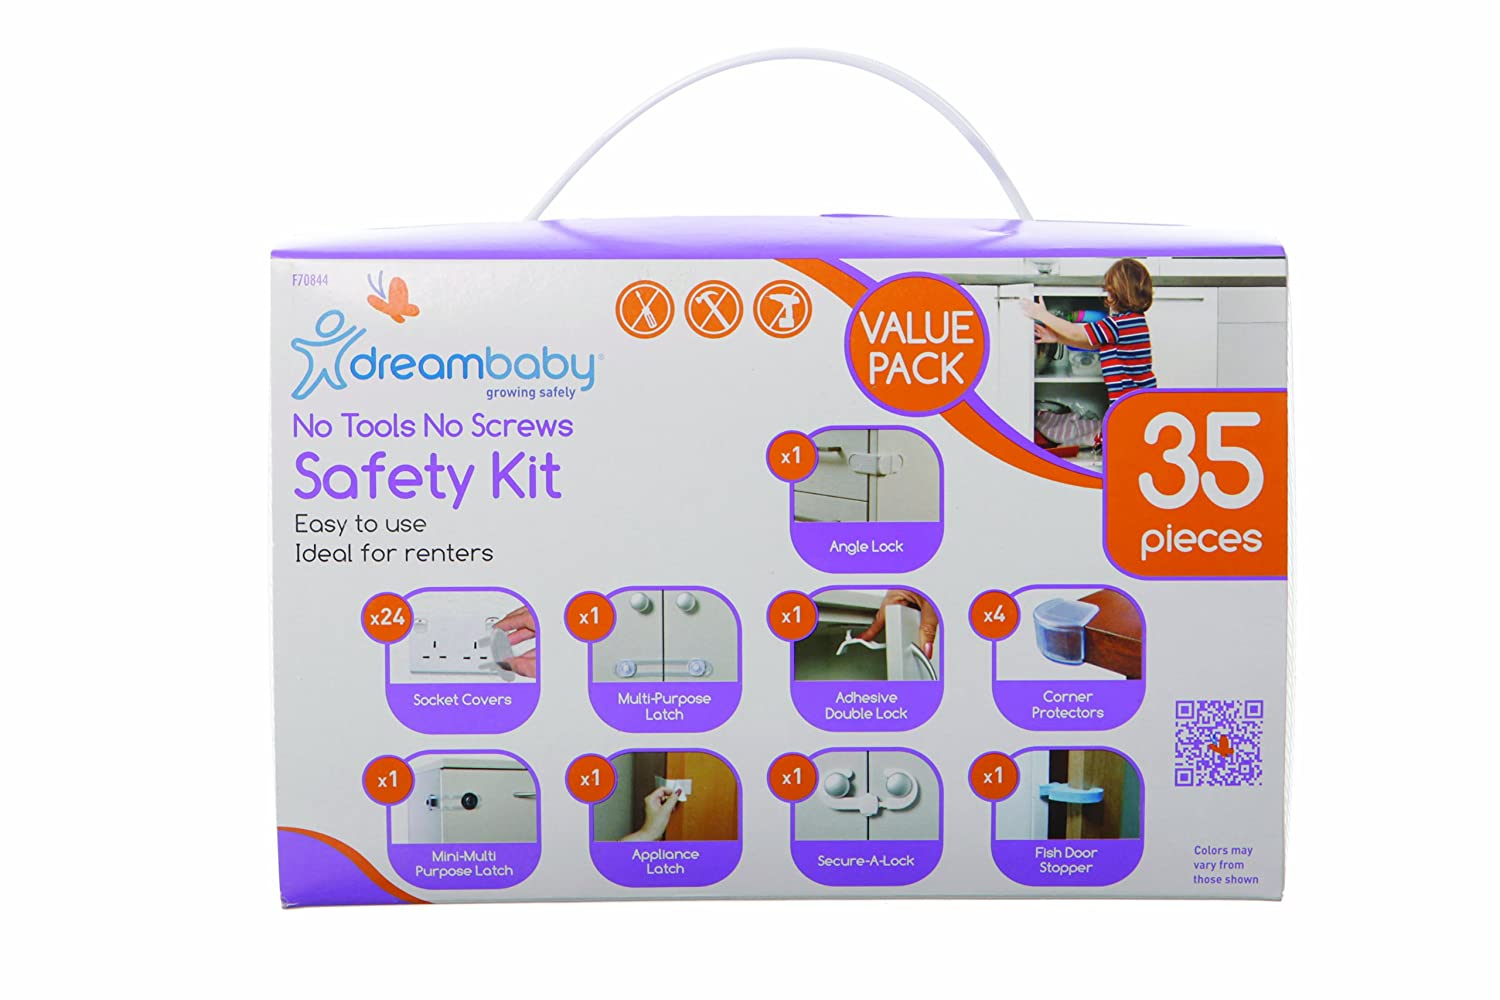 White, 35 Pieces Value Pack 35pcs Dreambaby No Tools No Screws Safety Kit Uk